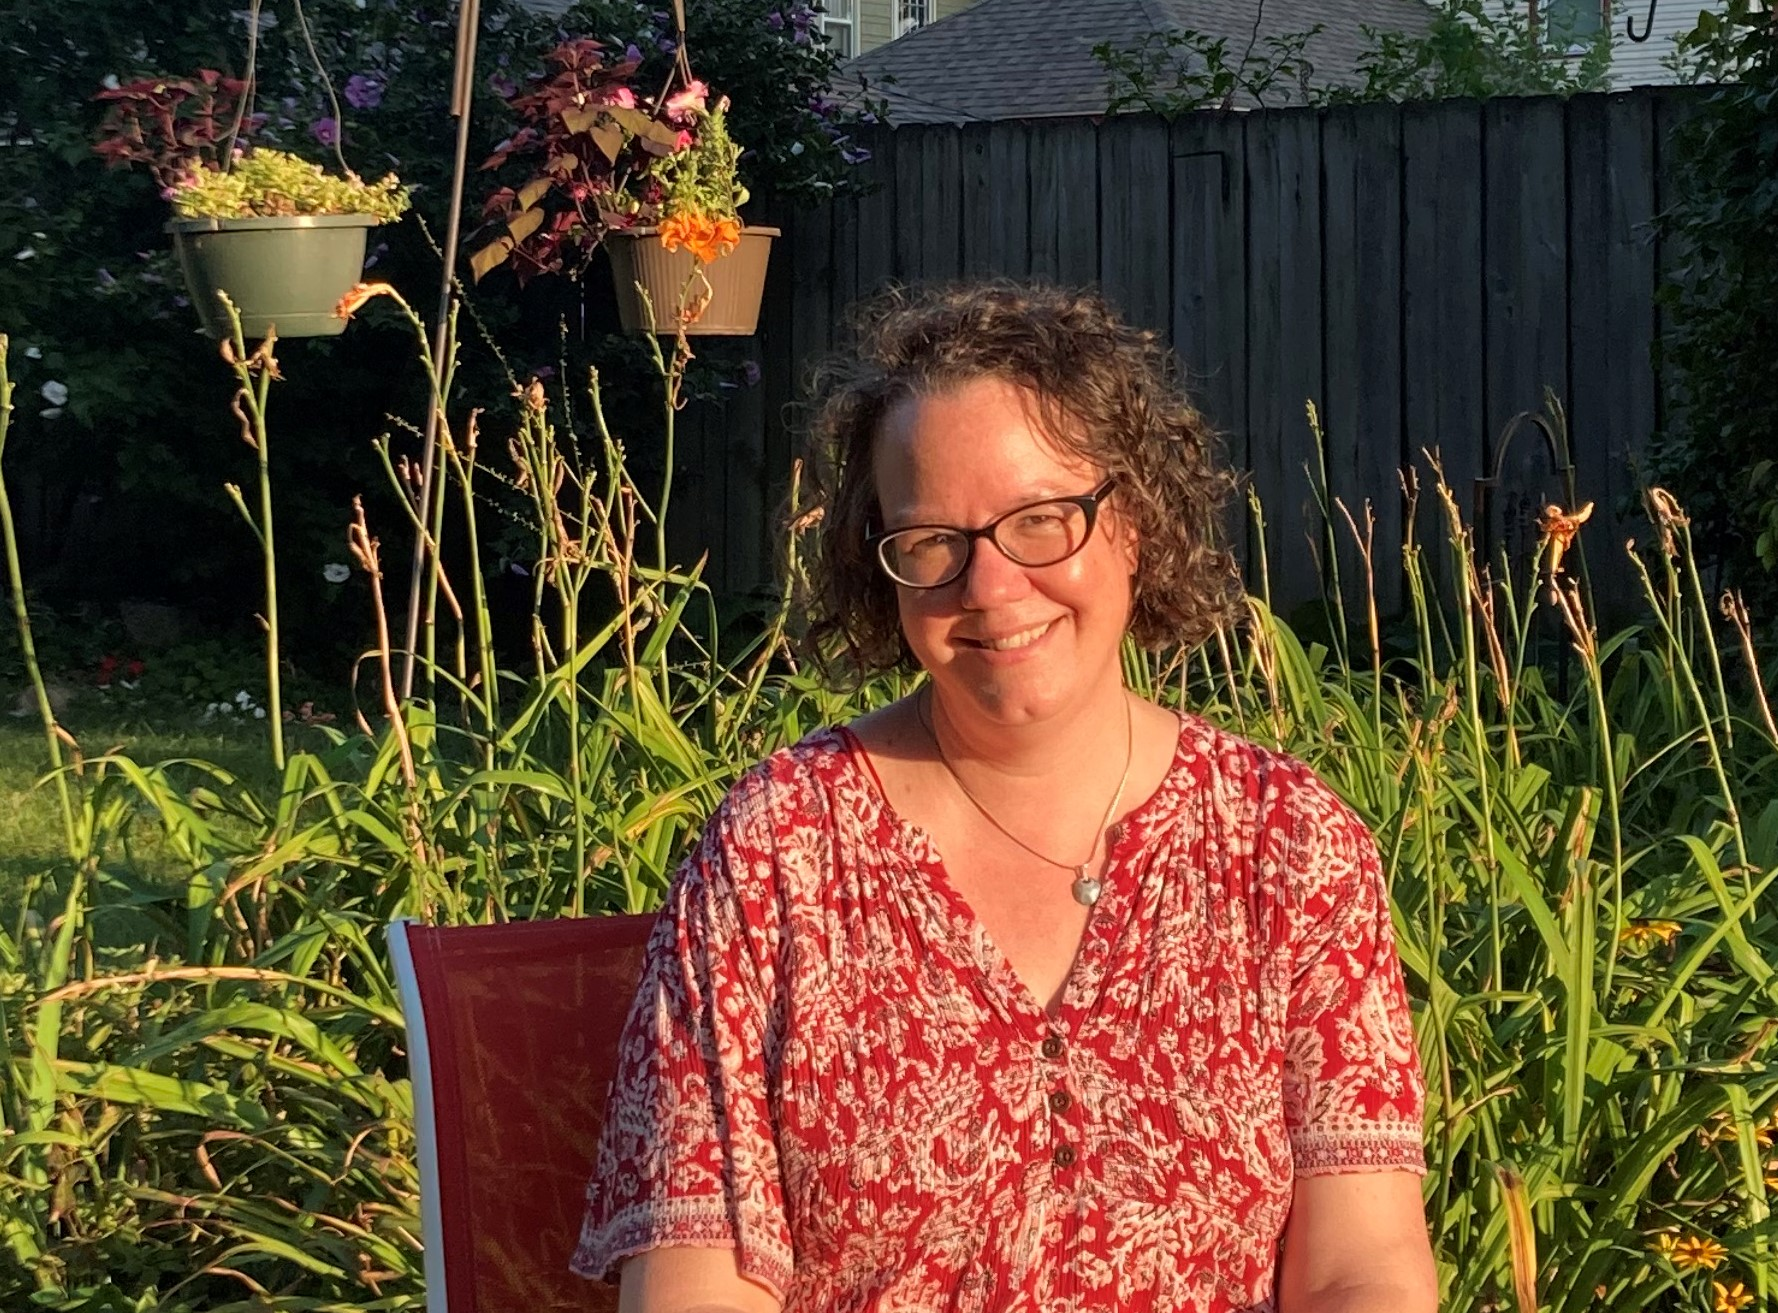 Please Welcome Erin Davison – Youth Services Librarian